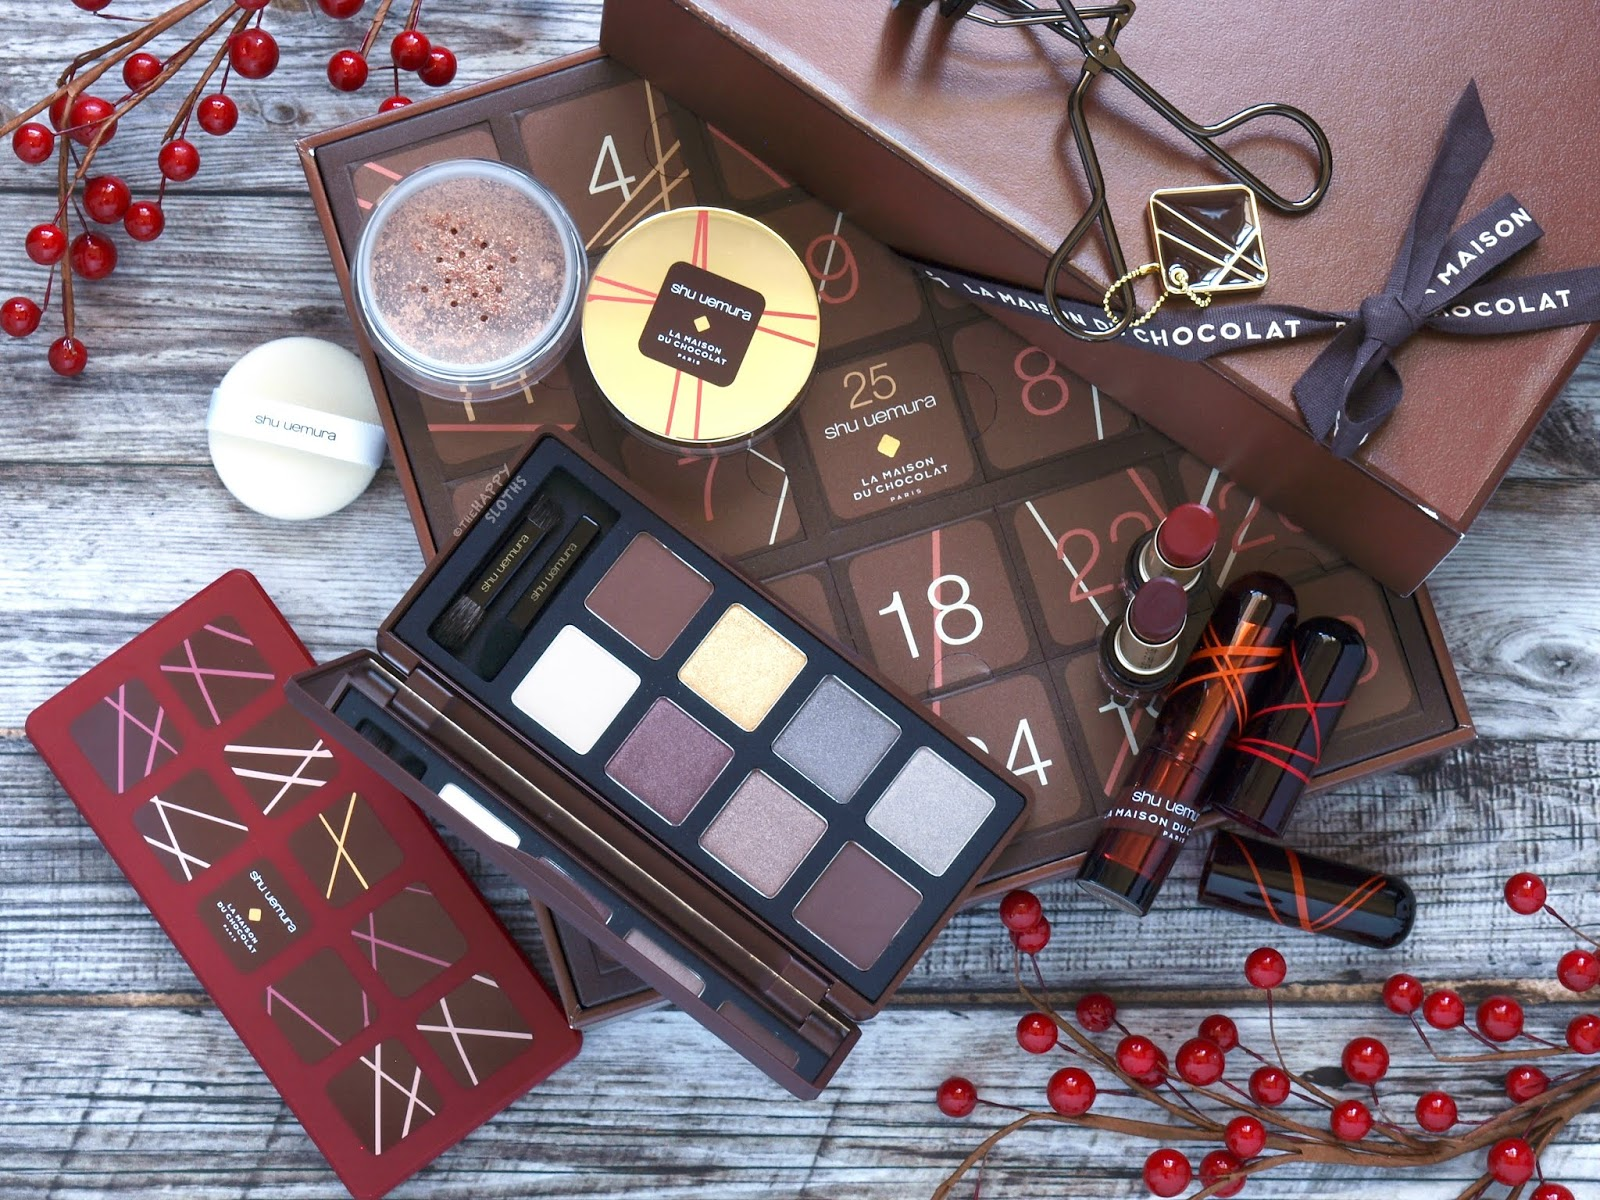 Shu Uemura | Holiday 2018 La Maison du Chocolat Collection: Review and Swatches